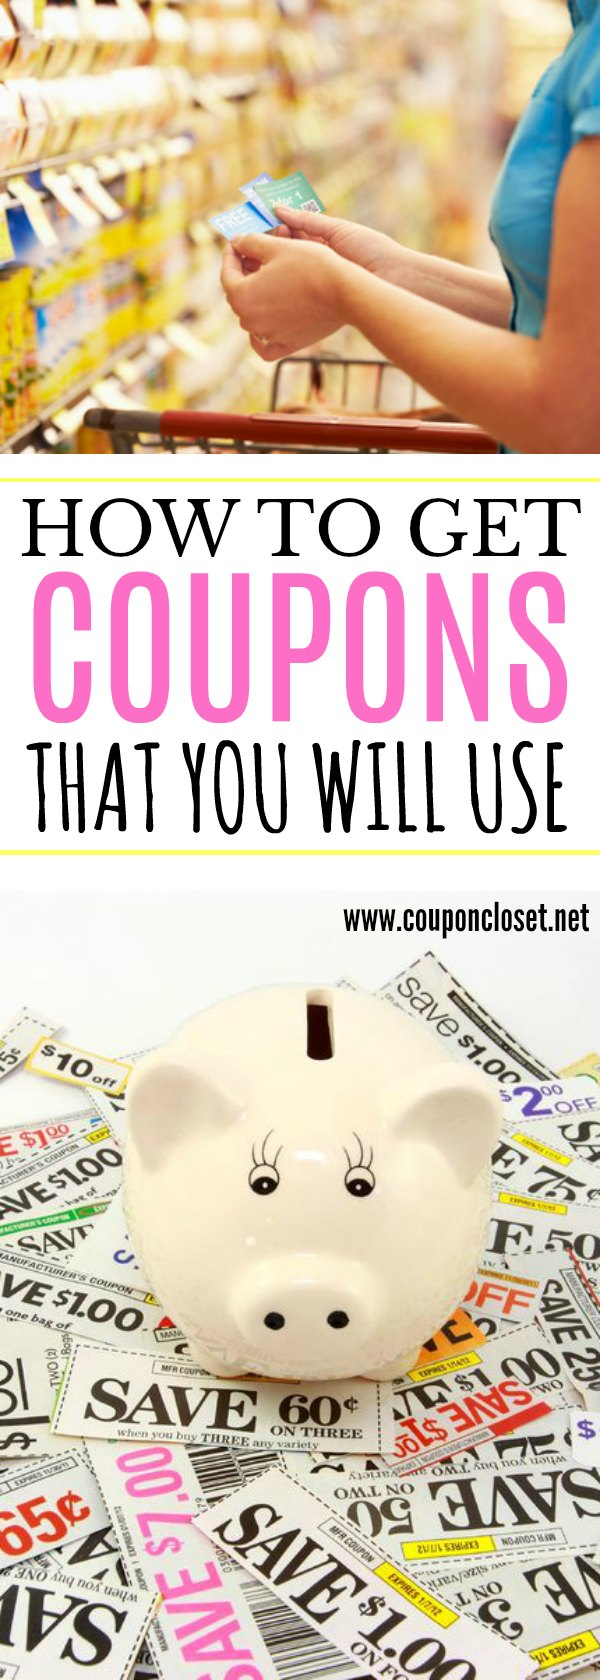 9 Ways to Find Coupons Without Buying the Sunday Paper Article Series If you are new to couponing or, if you have couponed for a long time, chances are you have (at some point) gotten coupons from the Sunday newspaper.